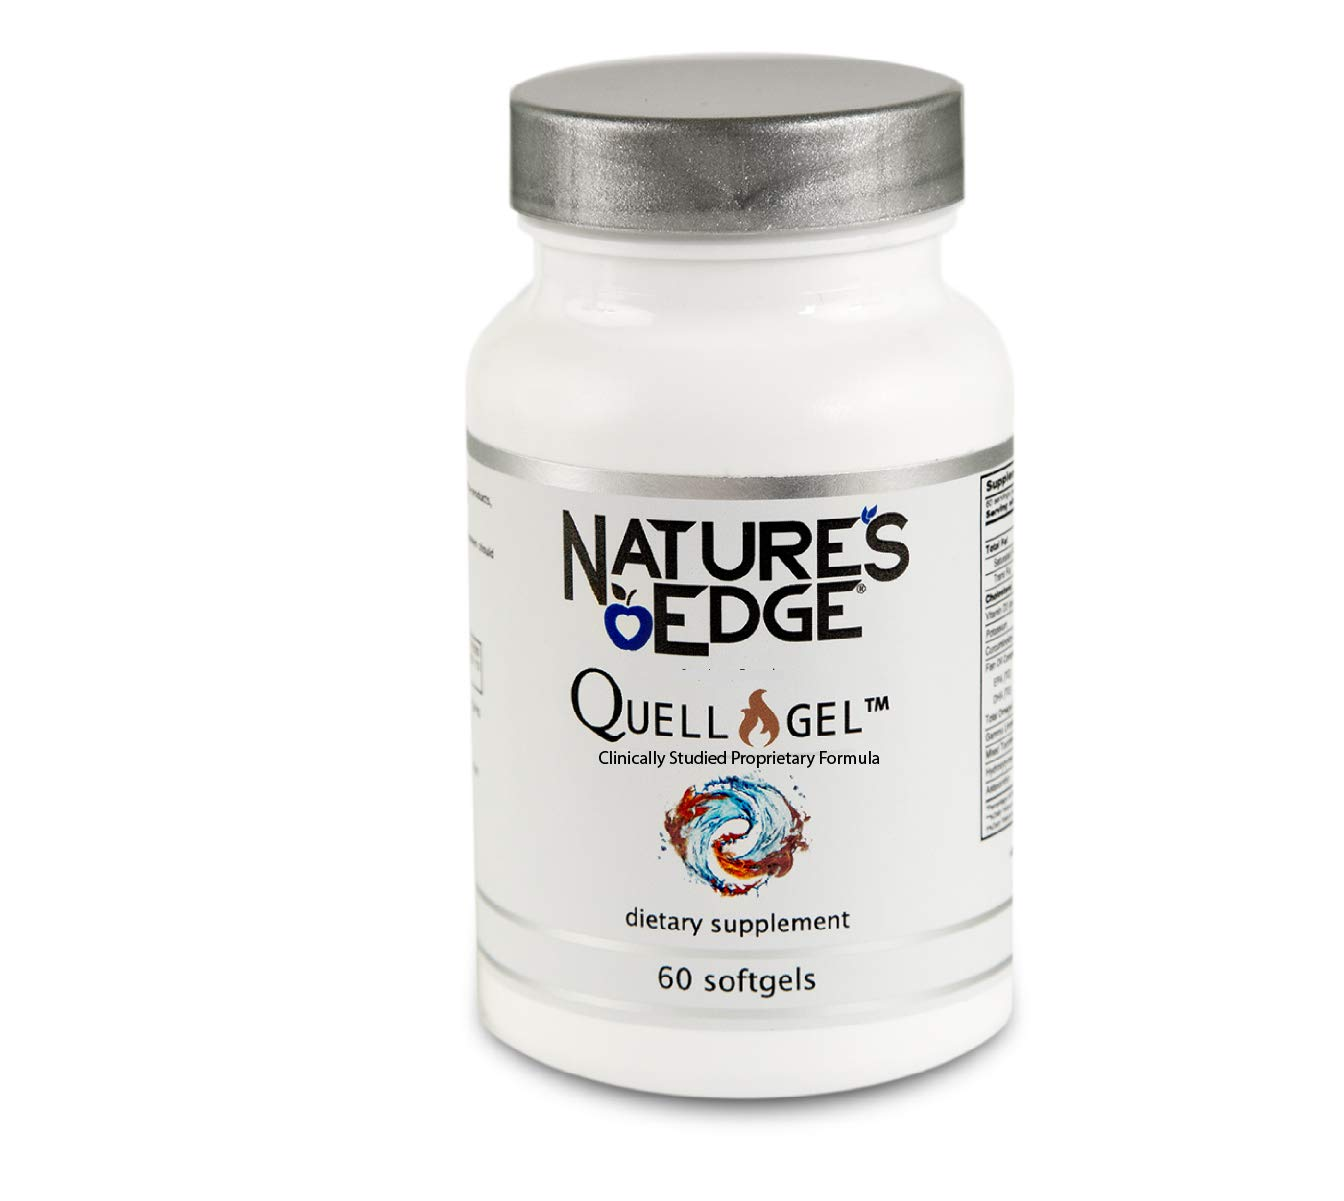 Nature's Edge® Clinically Tested Quell-GelTM Whole Body Anti-Inflammation Support for Daily Use [60 Softgels] | Proprietary Formula | Omega-3,Vitamin D3, Curcuminoids,Tocotrienols,Organic Hemp & More by Nature's Edge